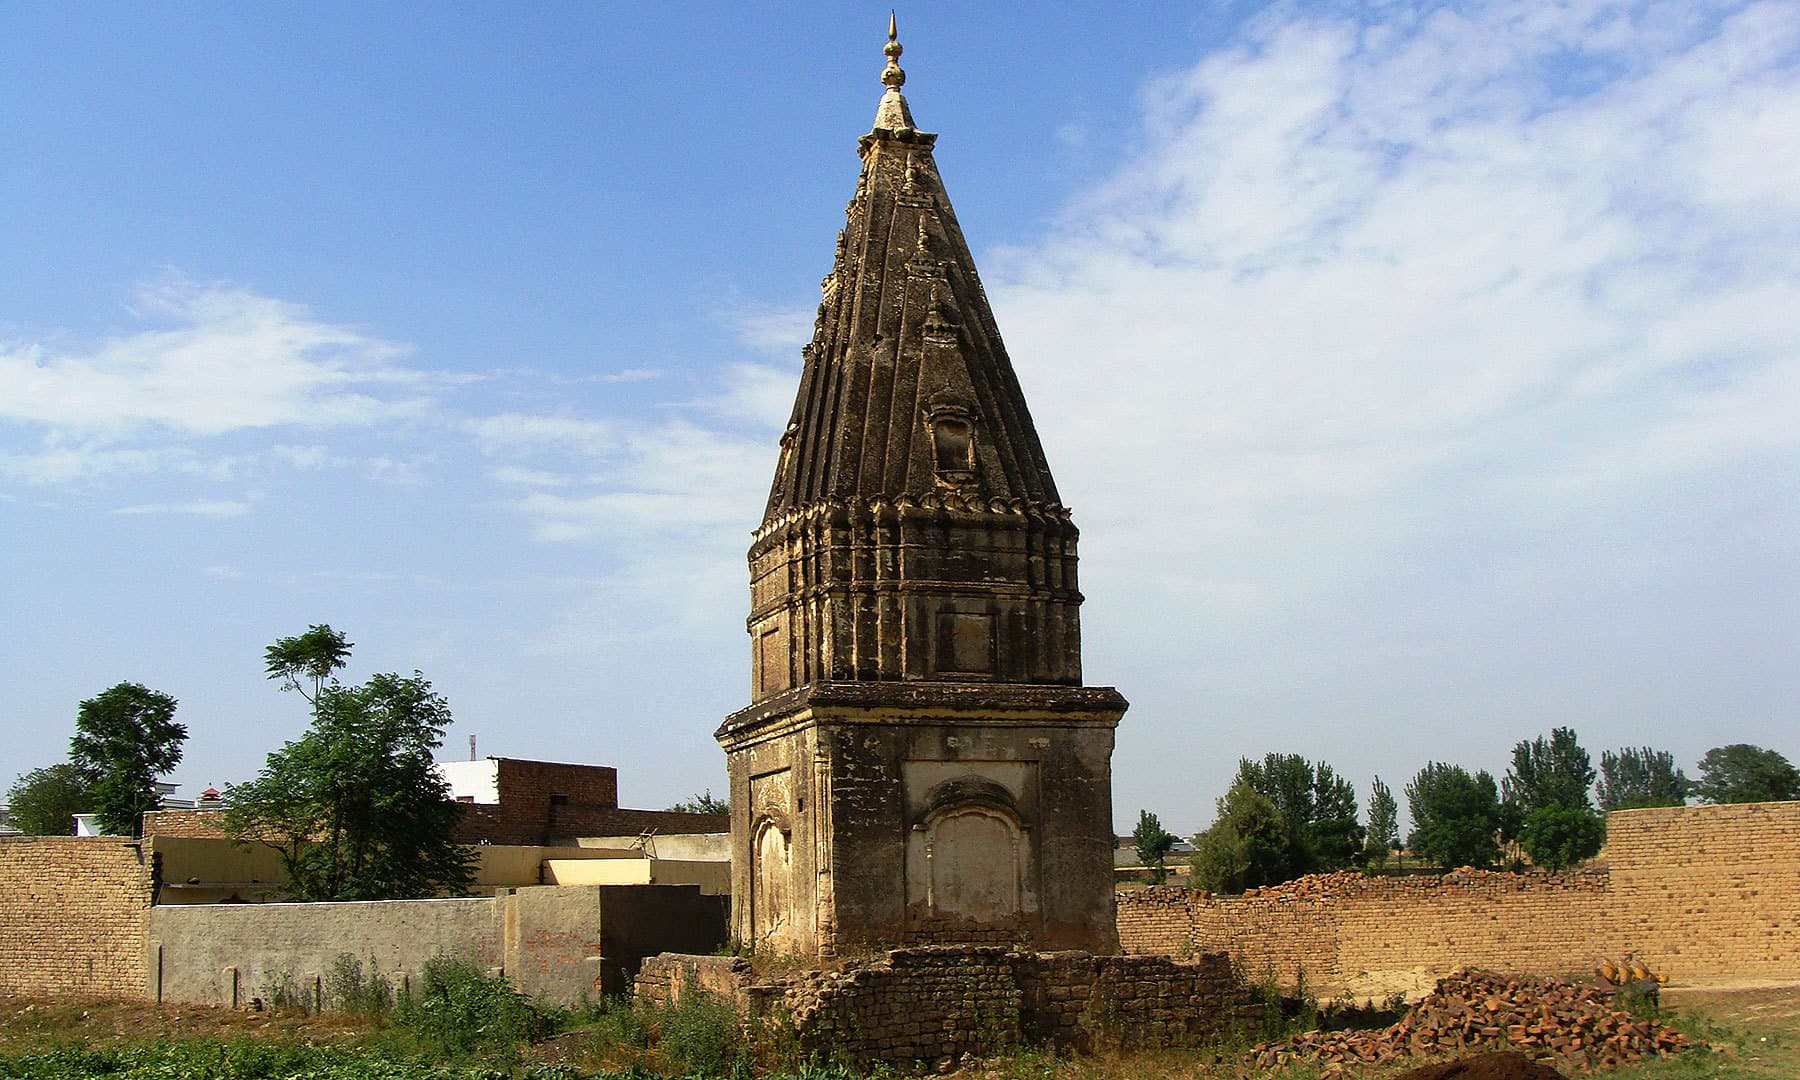 A Hindu temple in Gulyana.